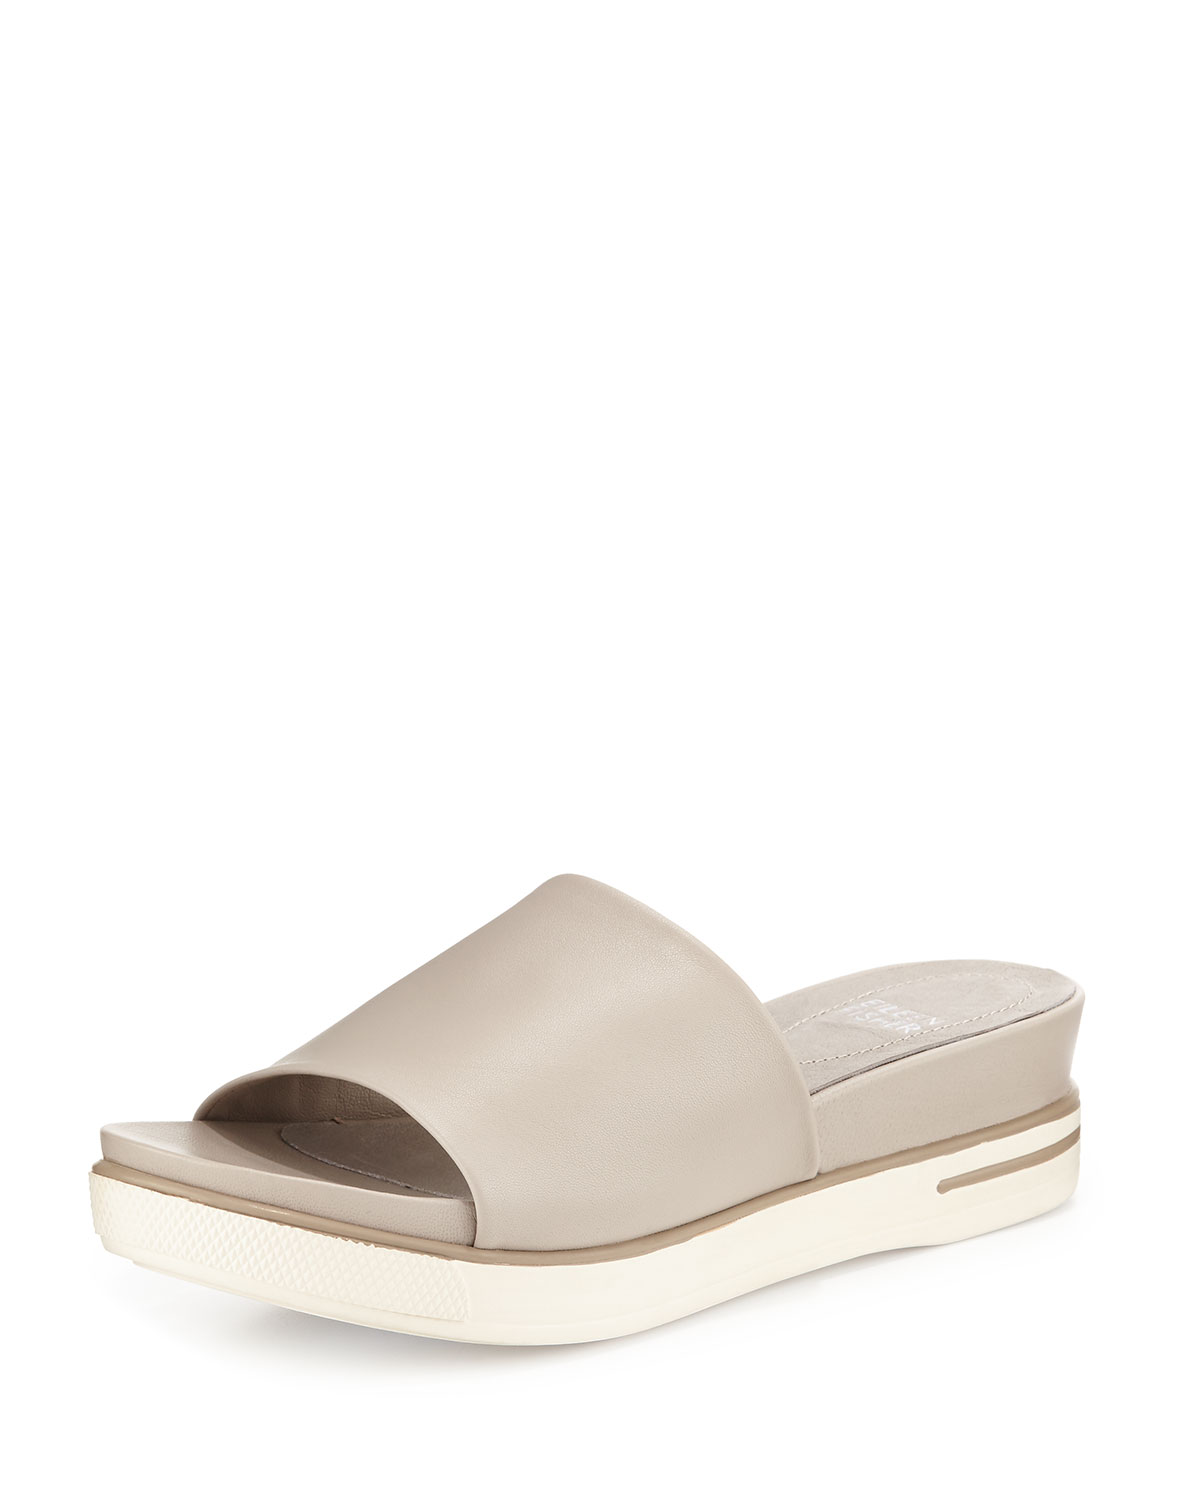 0d7c72f76d91c Eileen Fisher Scout Leather Single-Band Sandals